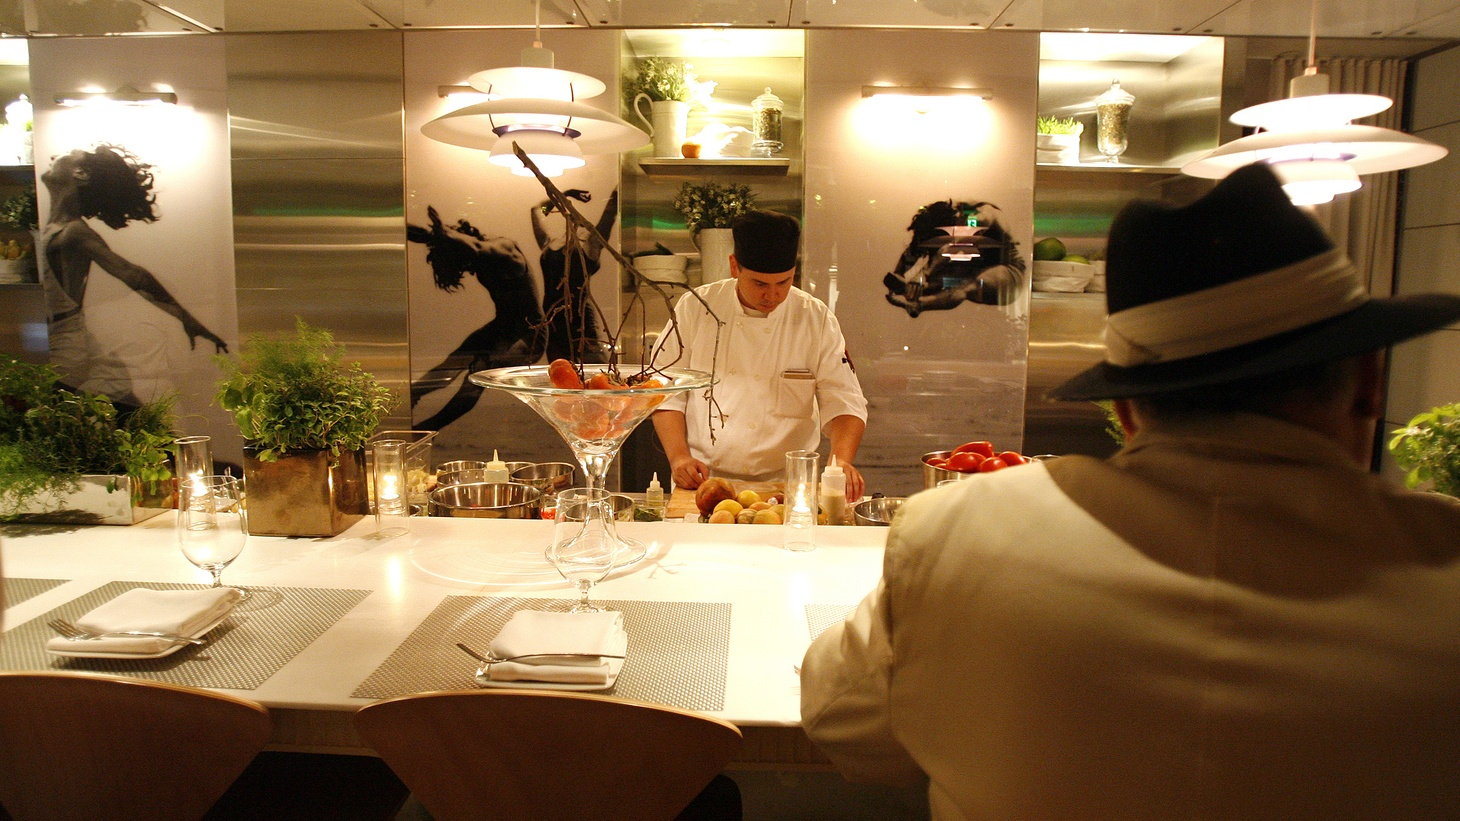 A patron sits at the bar of The Bazaar restaurant at the SLS hotel in Beverly Hills, California December 10, 2008. Spanish chef Jose Andres owns The Bazaar. But it shut down in August 2020 during the coronavirus pandemic.